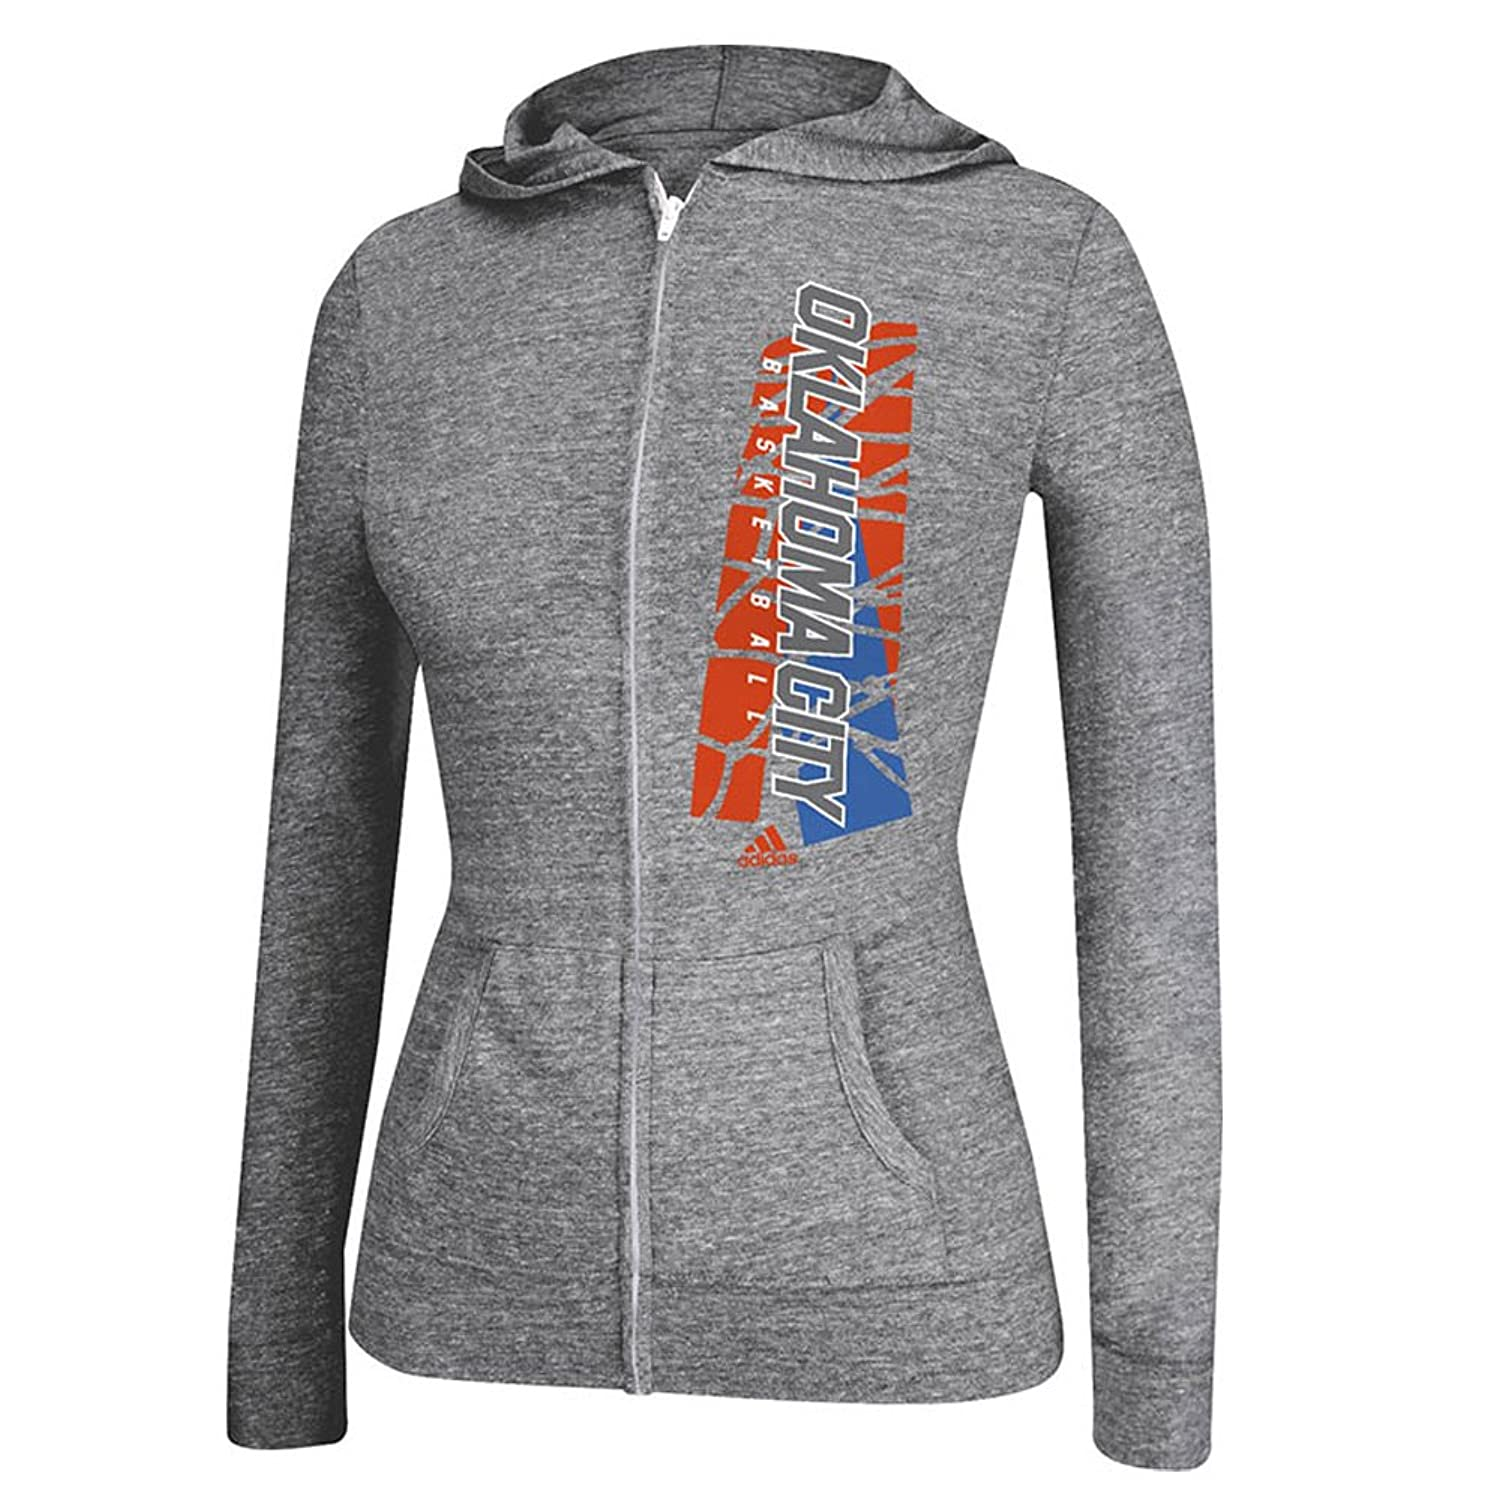 Adidas Women's Oklahoma City Thunder All Net Jacket Dark Grey Heather